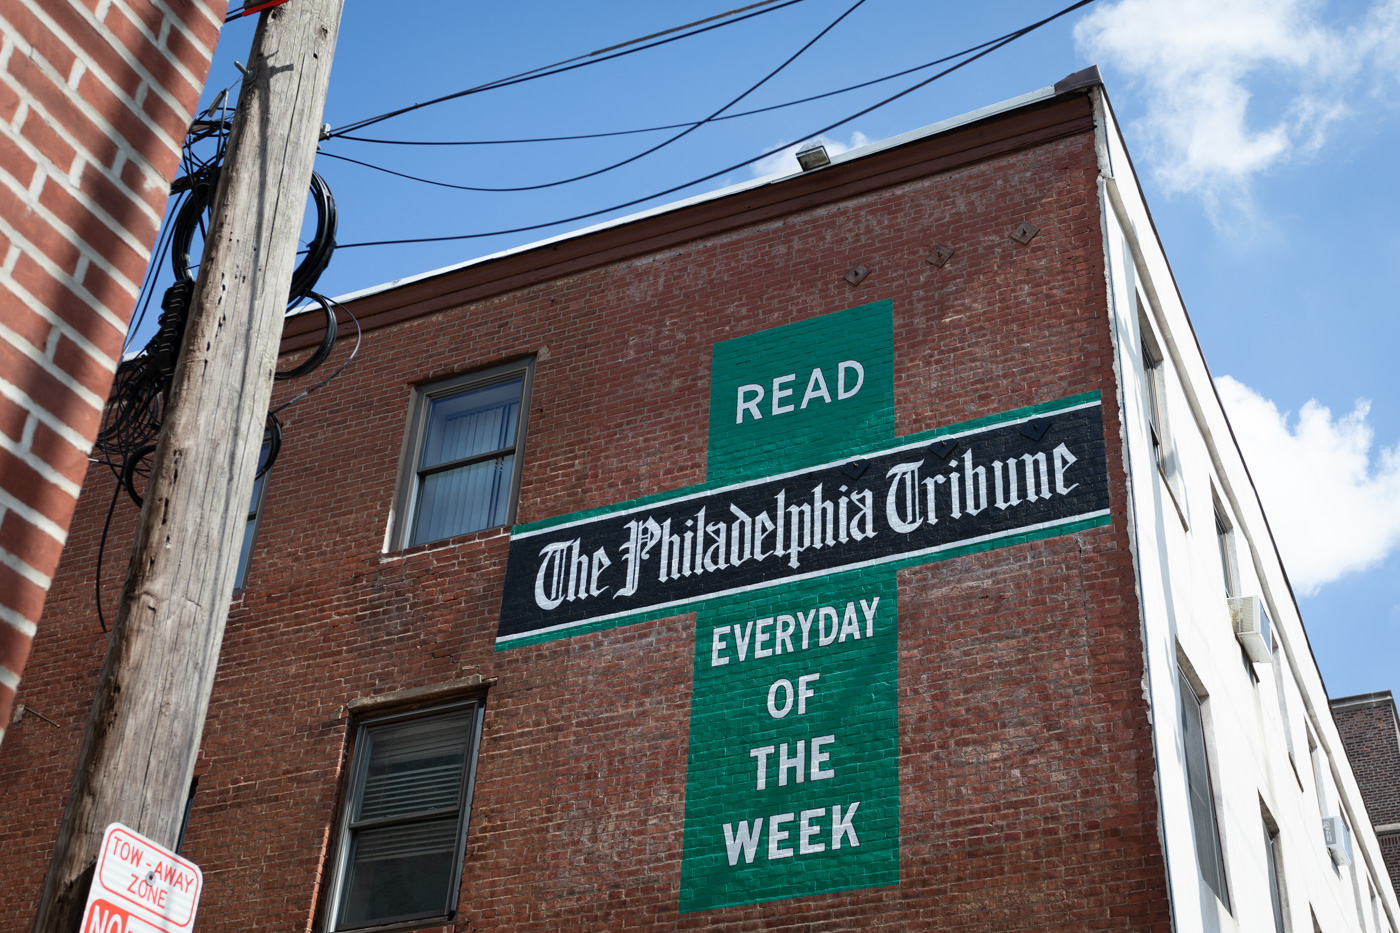 The Philadelphia Tribune